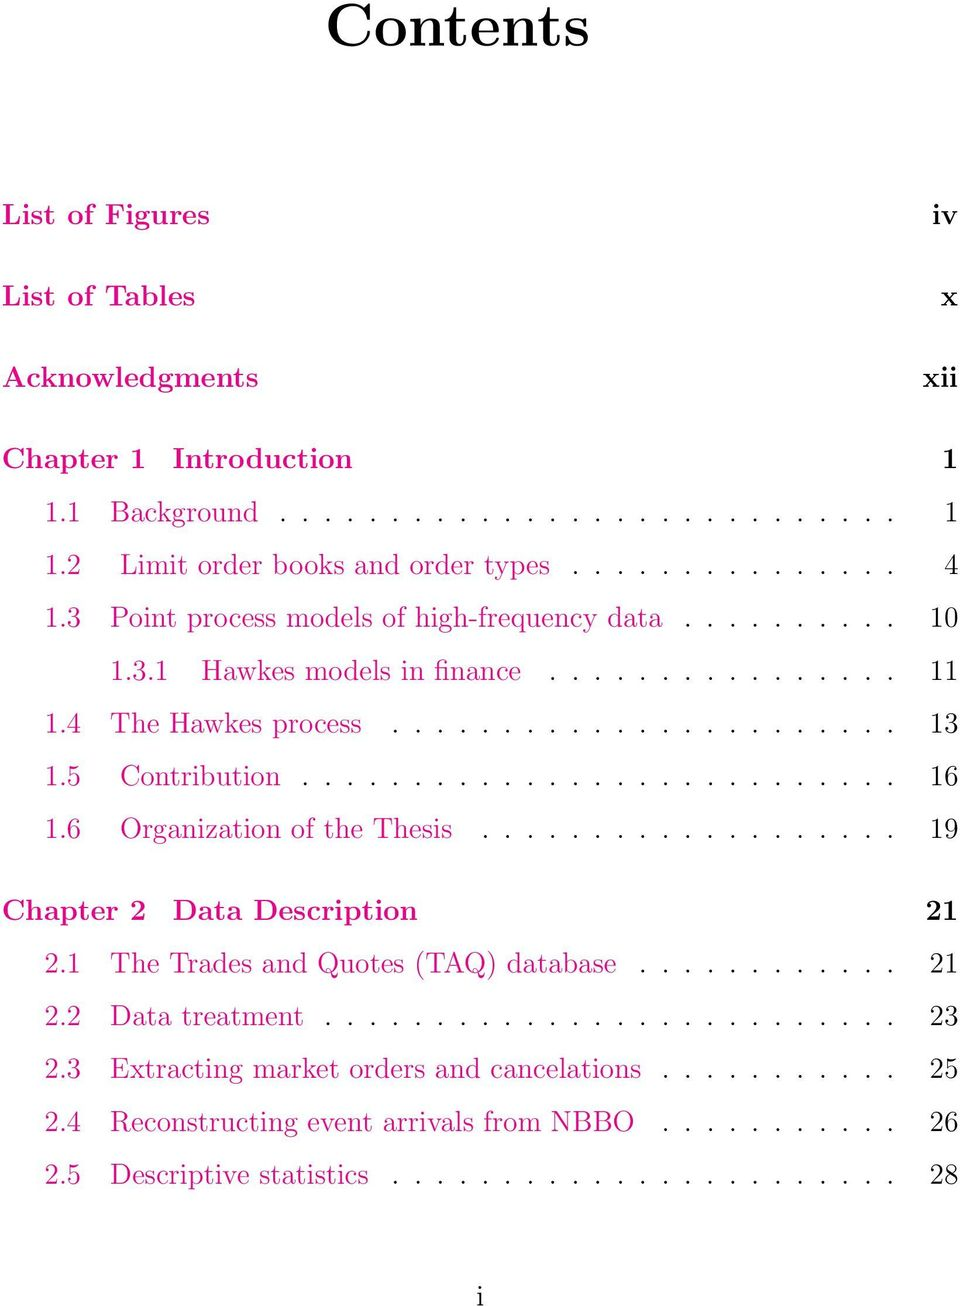 6 Organization of the Thesis................... 19 Chapter 2 Data Description 21 2.1 The Trades and Quotes (TAQ) database............ 21 2.2 Data treatment.......................... 23 2.